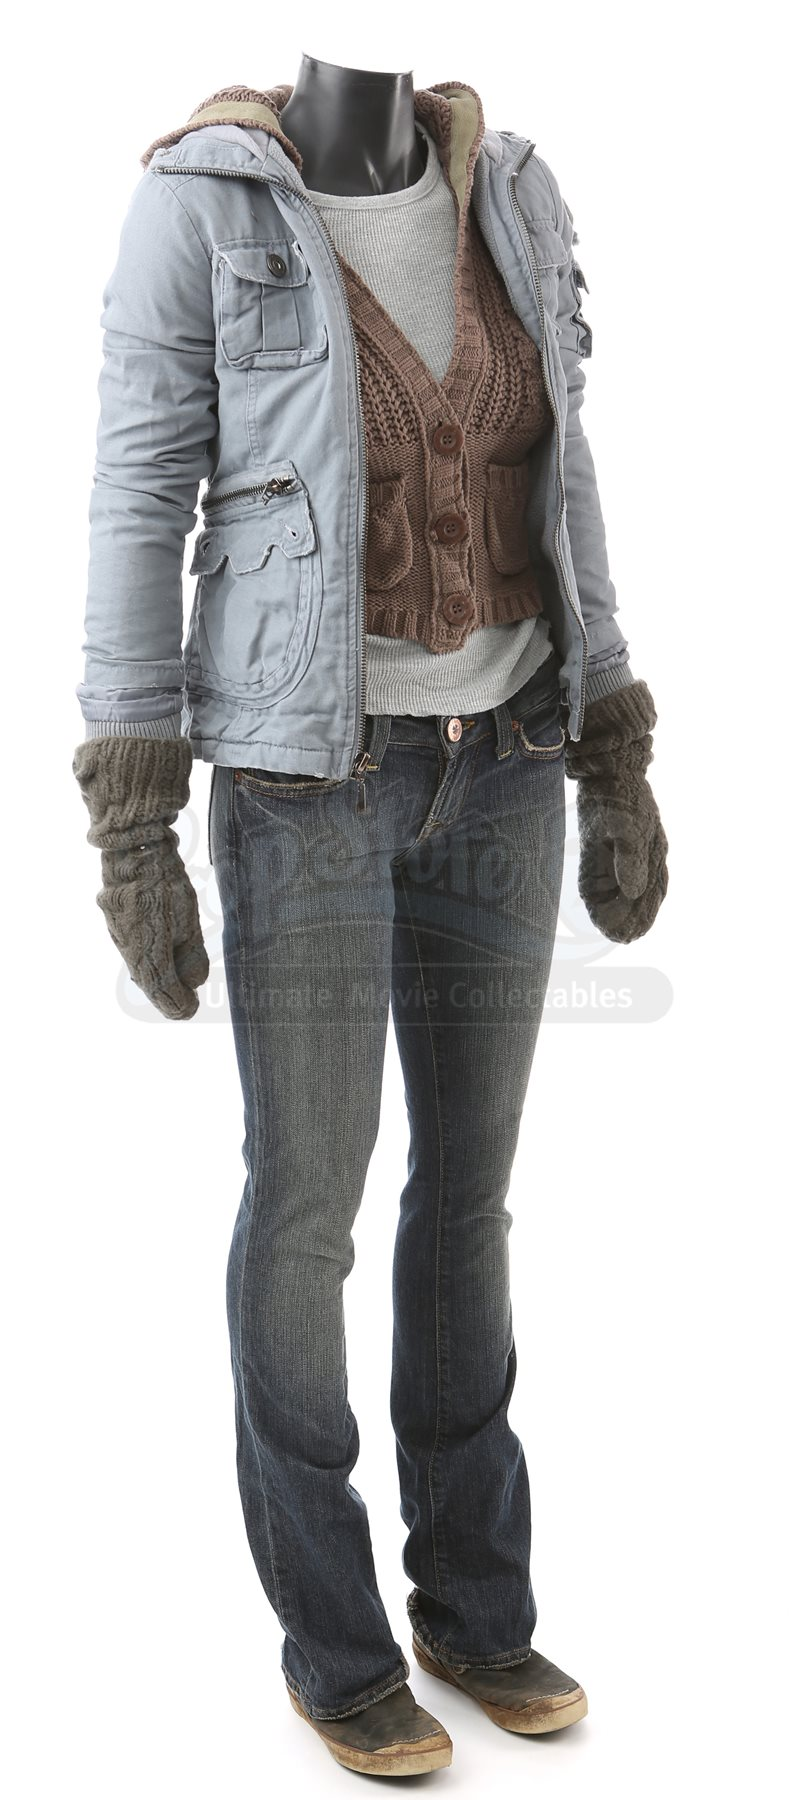 Bella Swan's Meadow Costume - Current price: $7000